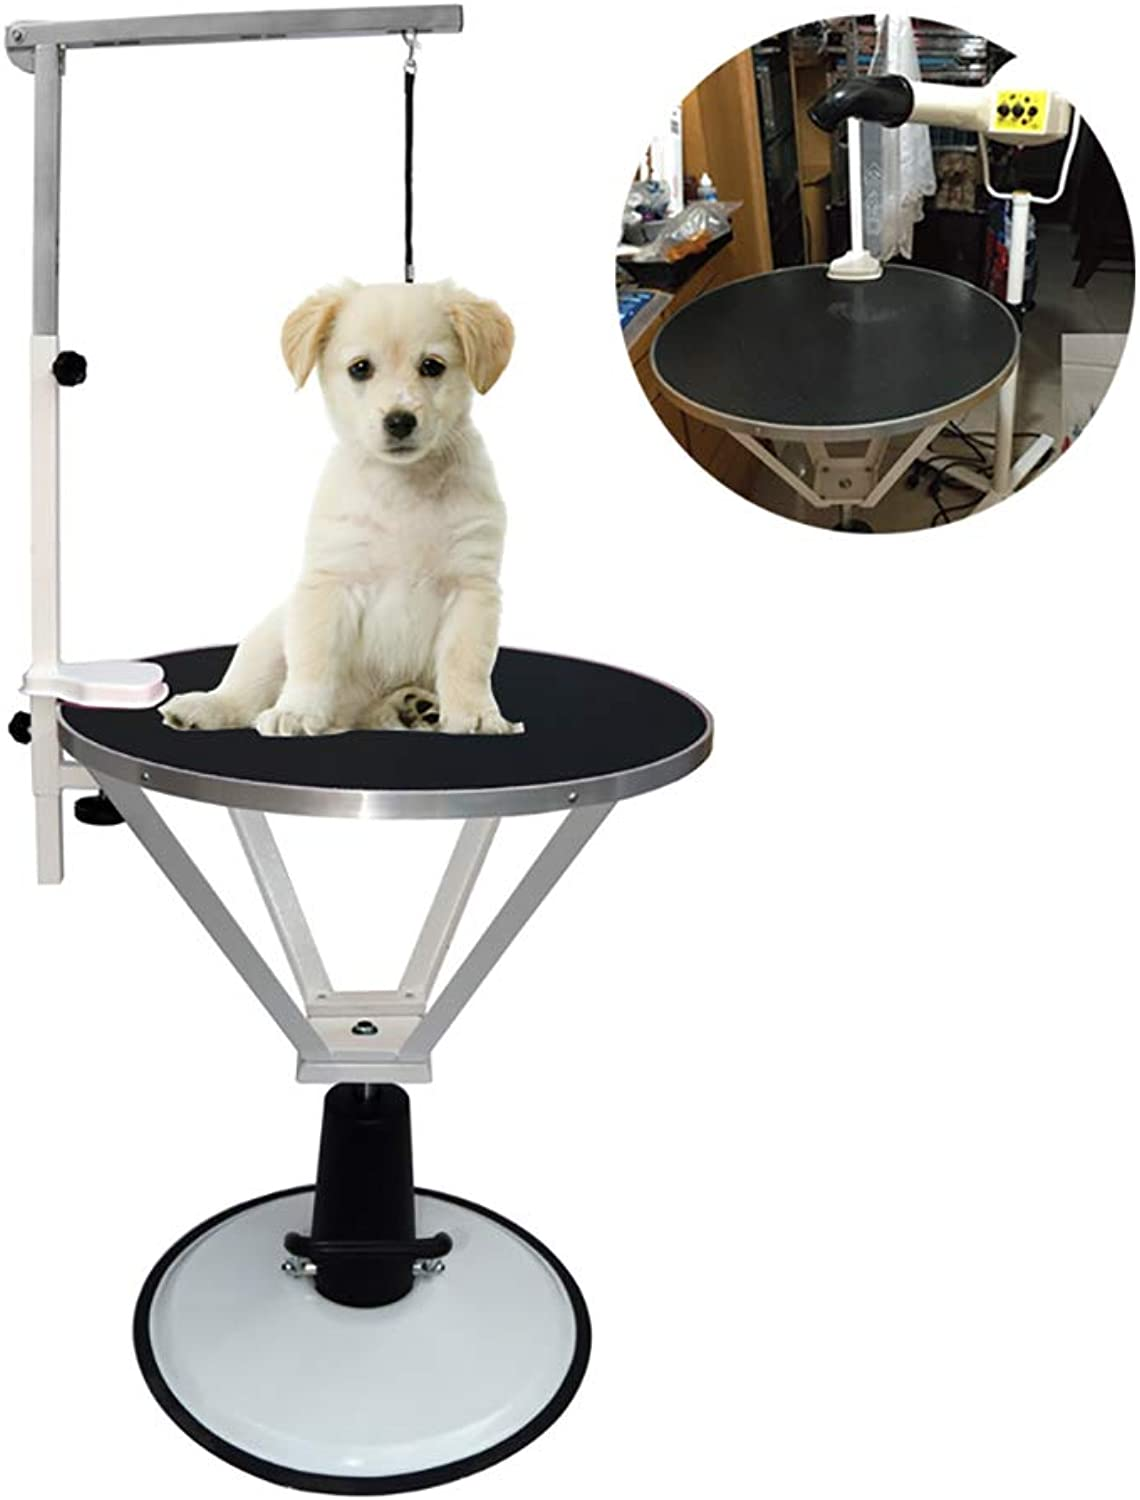 DJLOOKK Pet Grooming Table Professional Adjustable Hydraulic Pump For Medium Small Dogs,Black